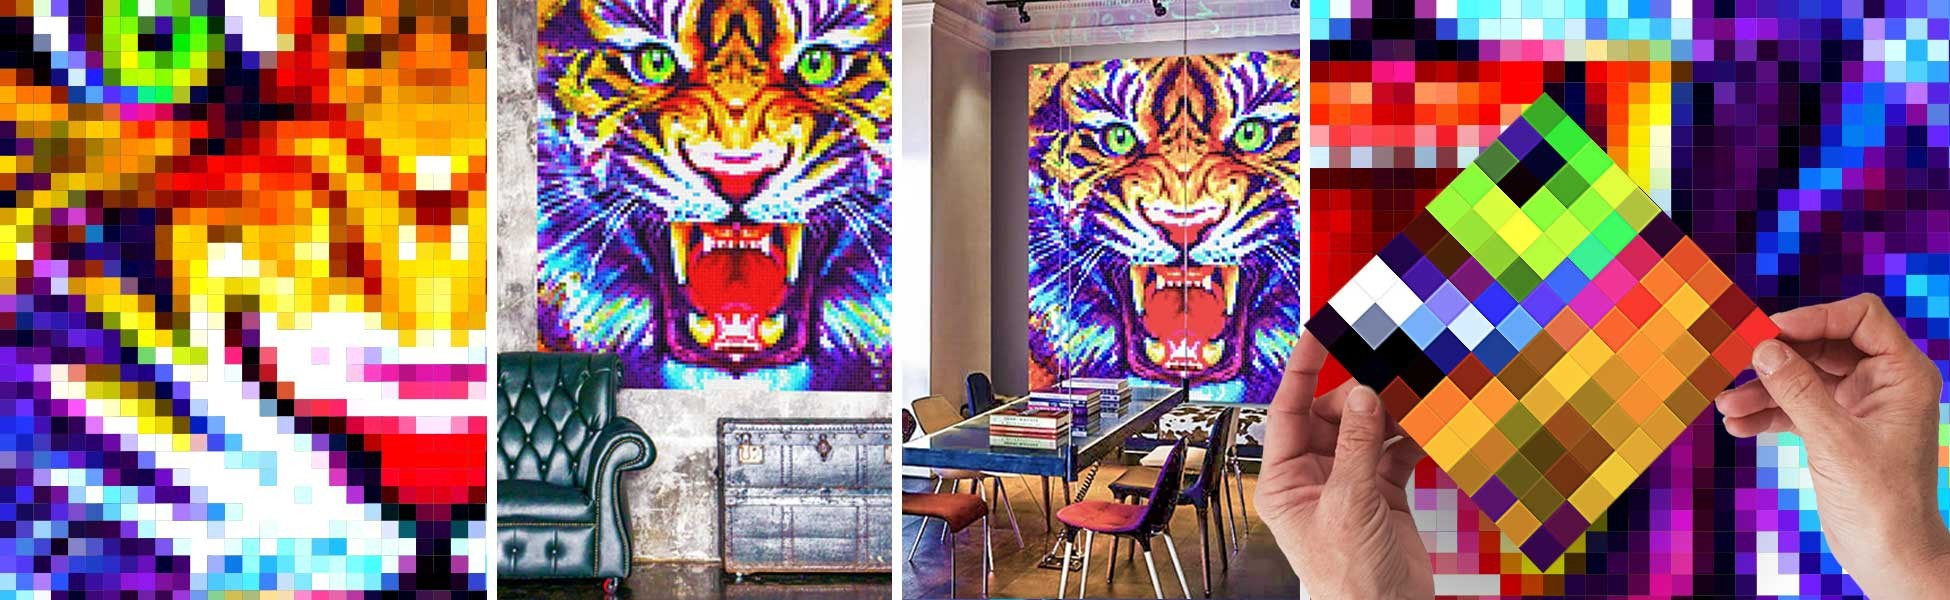 Choose an animal atmosphere with this Tiger artwork !